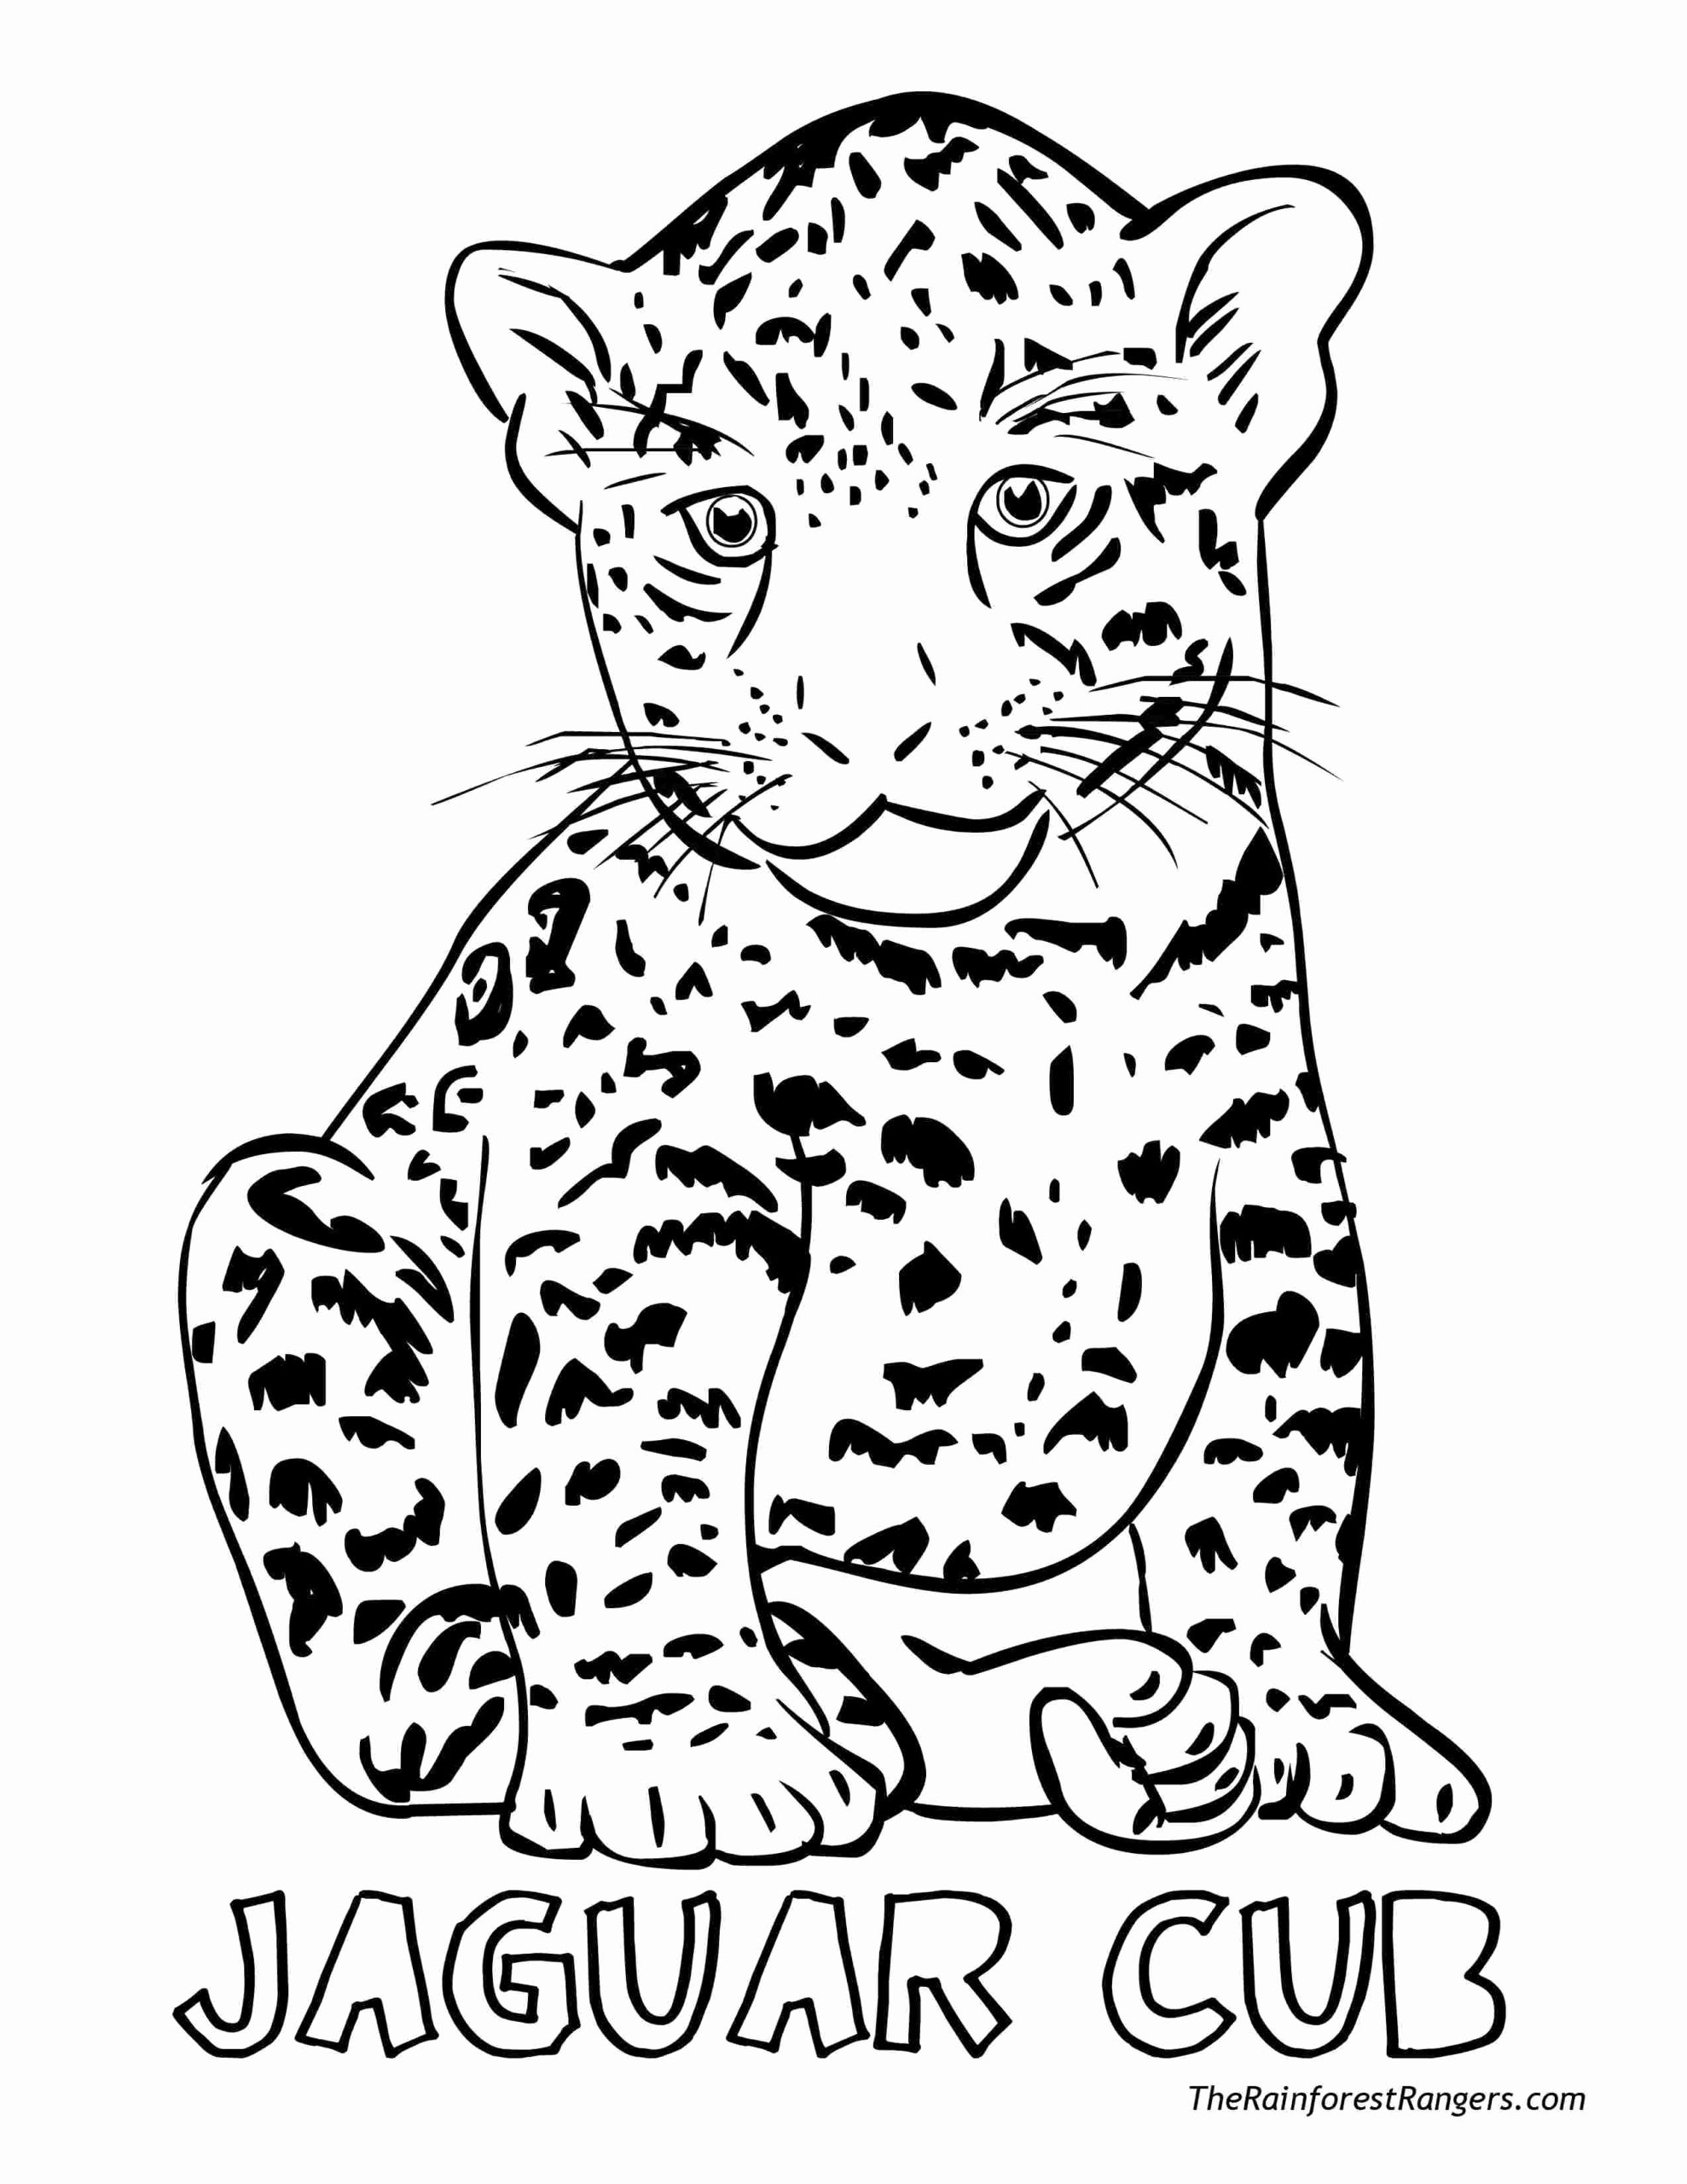 Animal Coloring Pages For Kids Medium Zoo Animal Coloring Pages Farm Animal Coloring Pages Jungle Coloring Pages